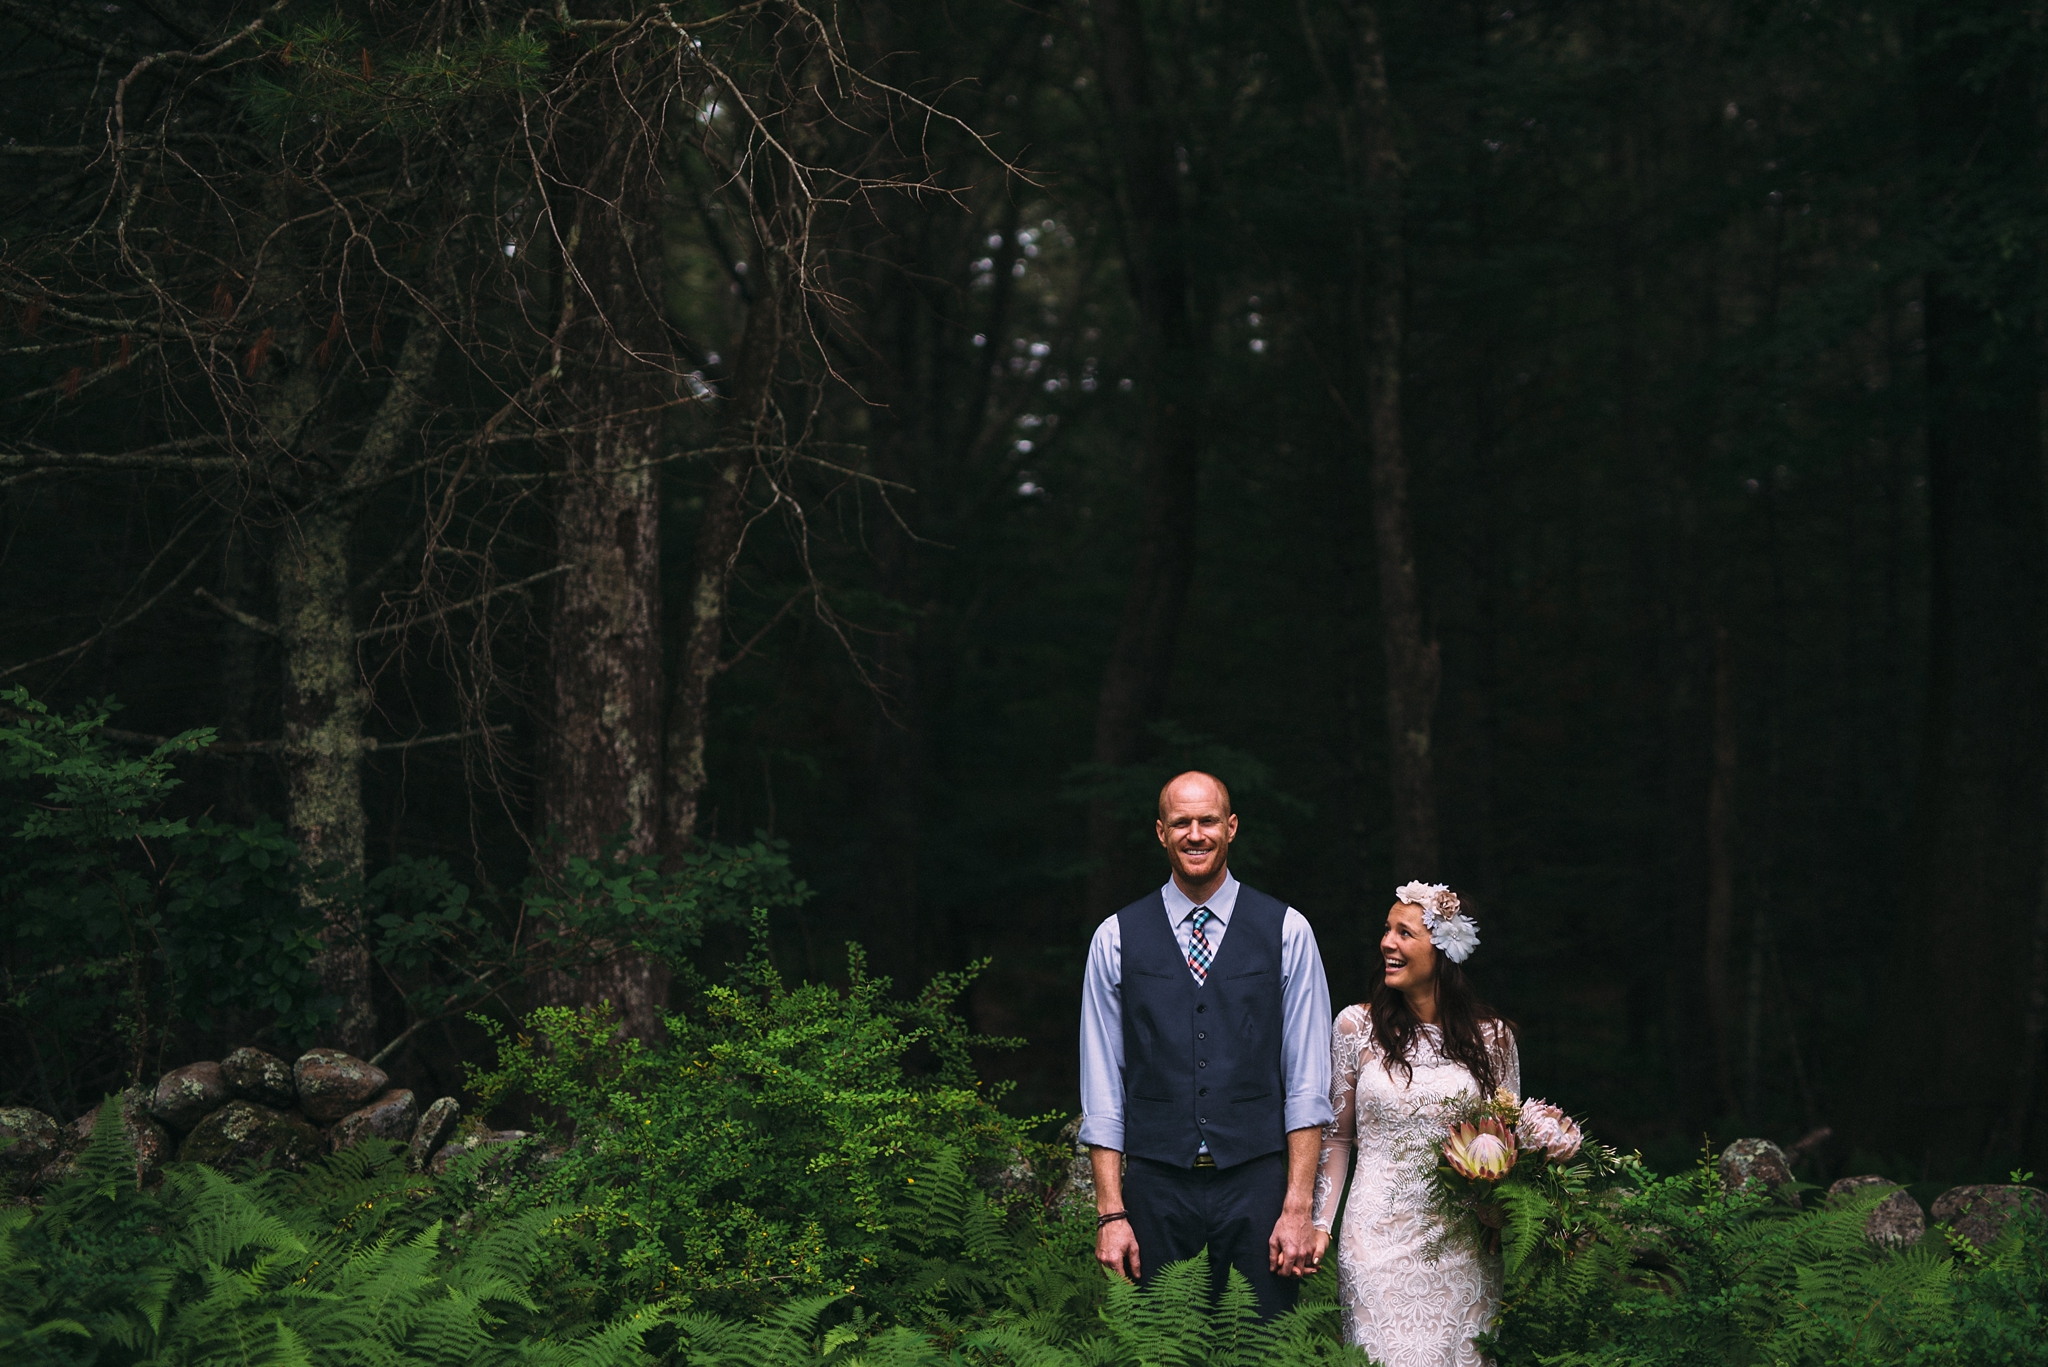 kaihla_tonai_intimate_wedding_elopement_photographer_2128